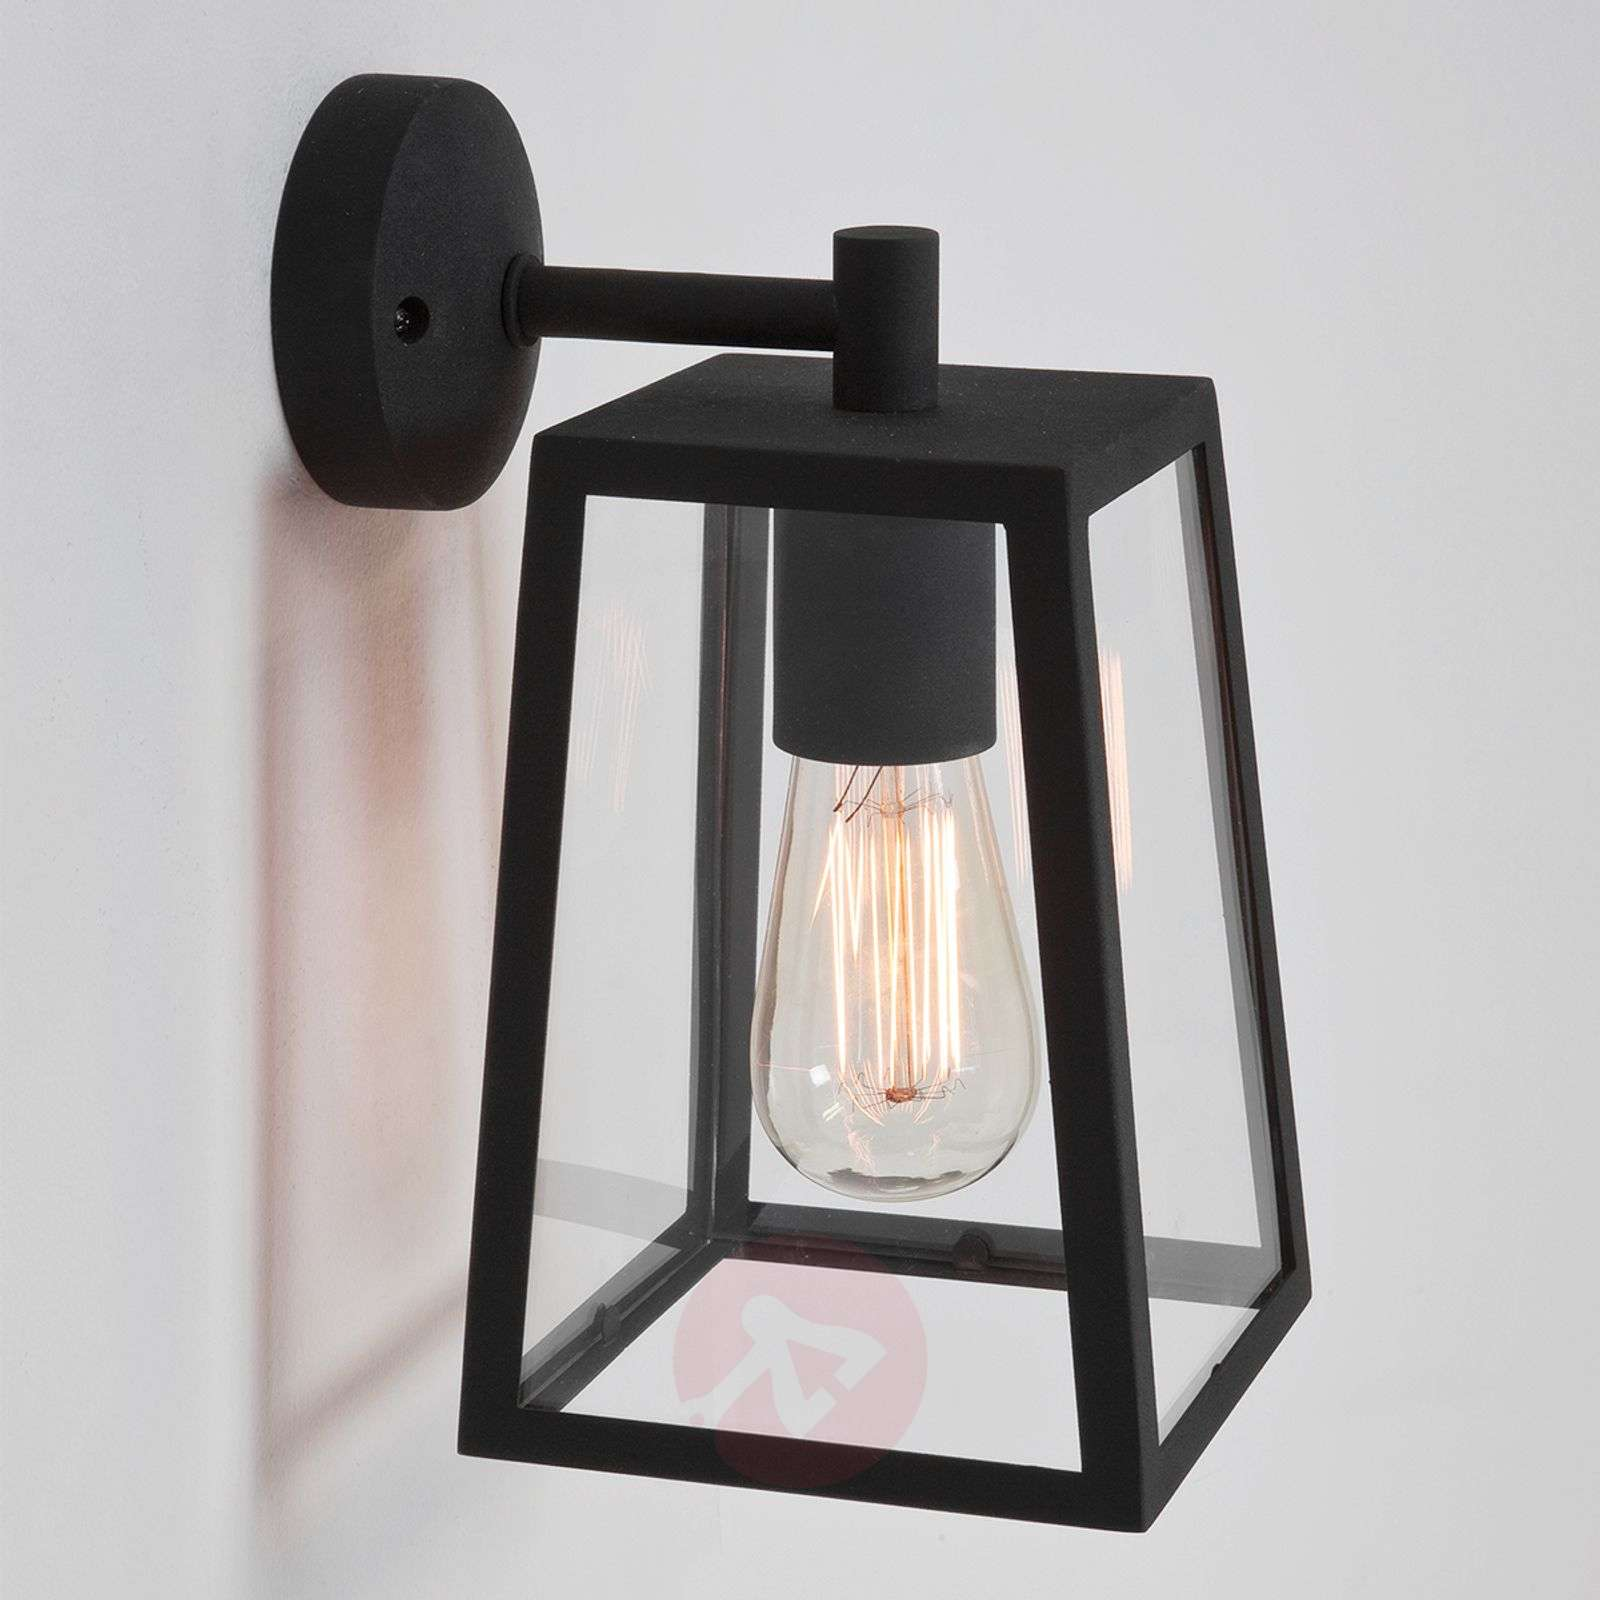 Calvi Outside Wall Light with Black Frame-1020481-04